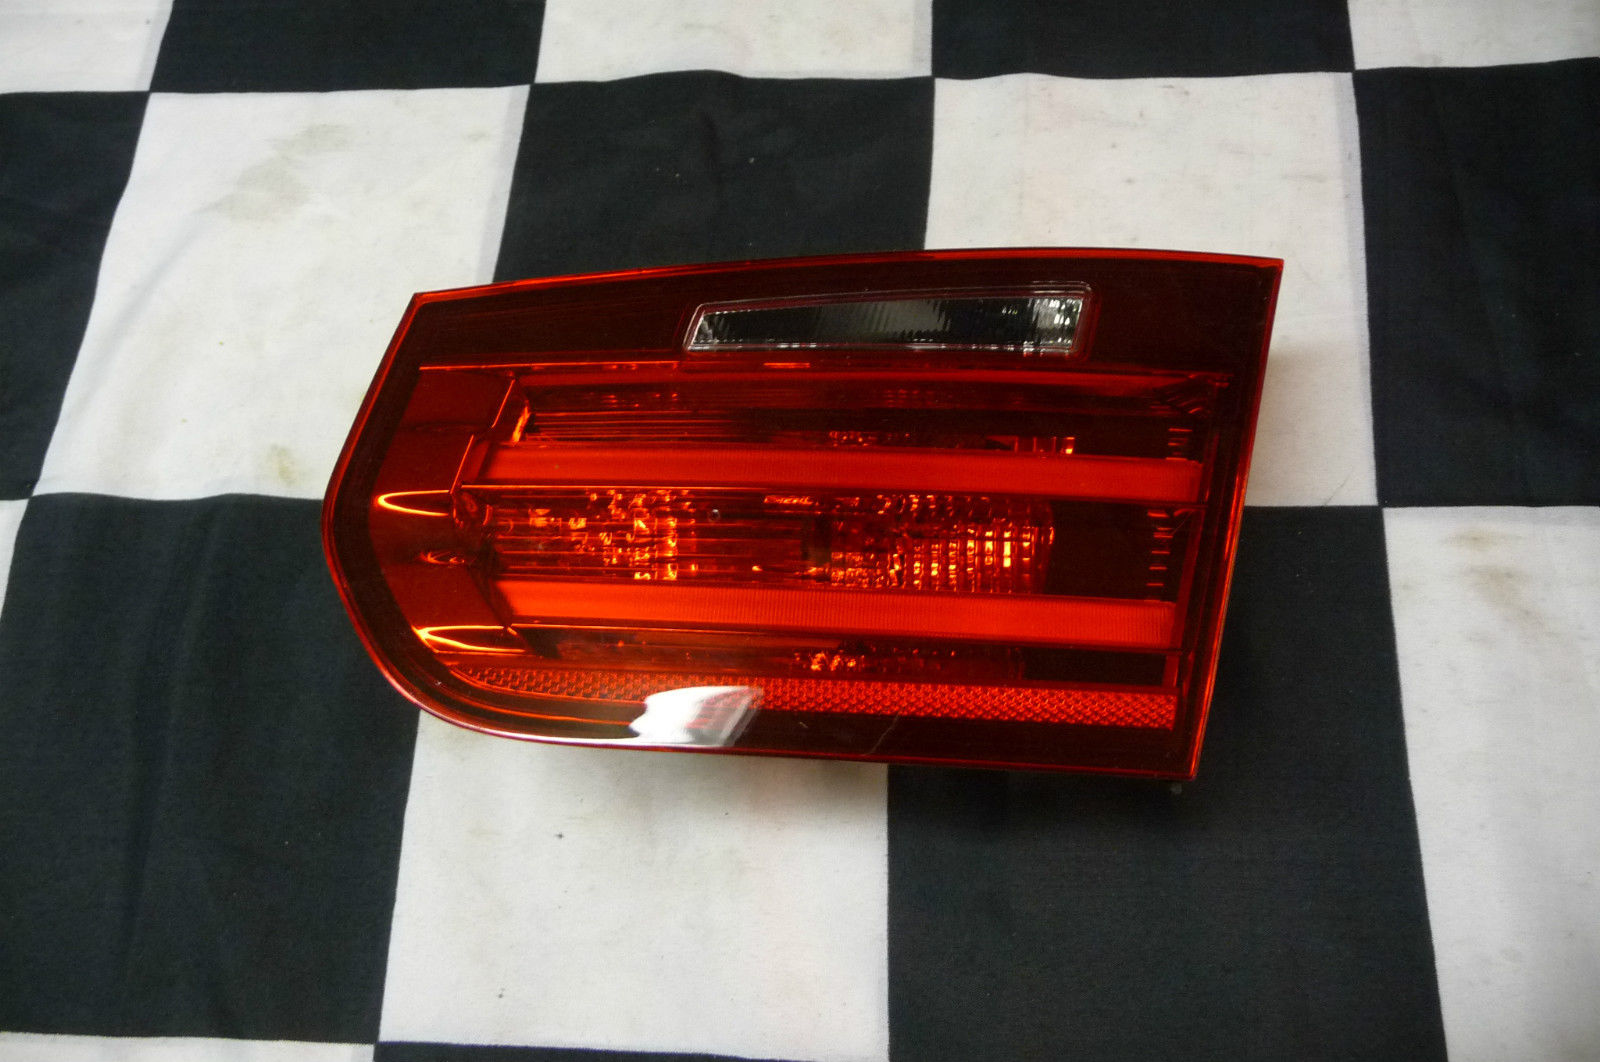 2012 2013 2014 2015 BMW F30 F31 320i 328i 335i Rear Right Light Taillight in Trunk Lid 63217313056; 63217259916; 63217372794 OEM OE